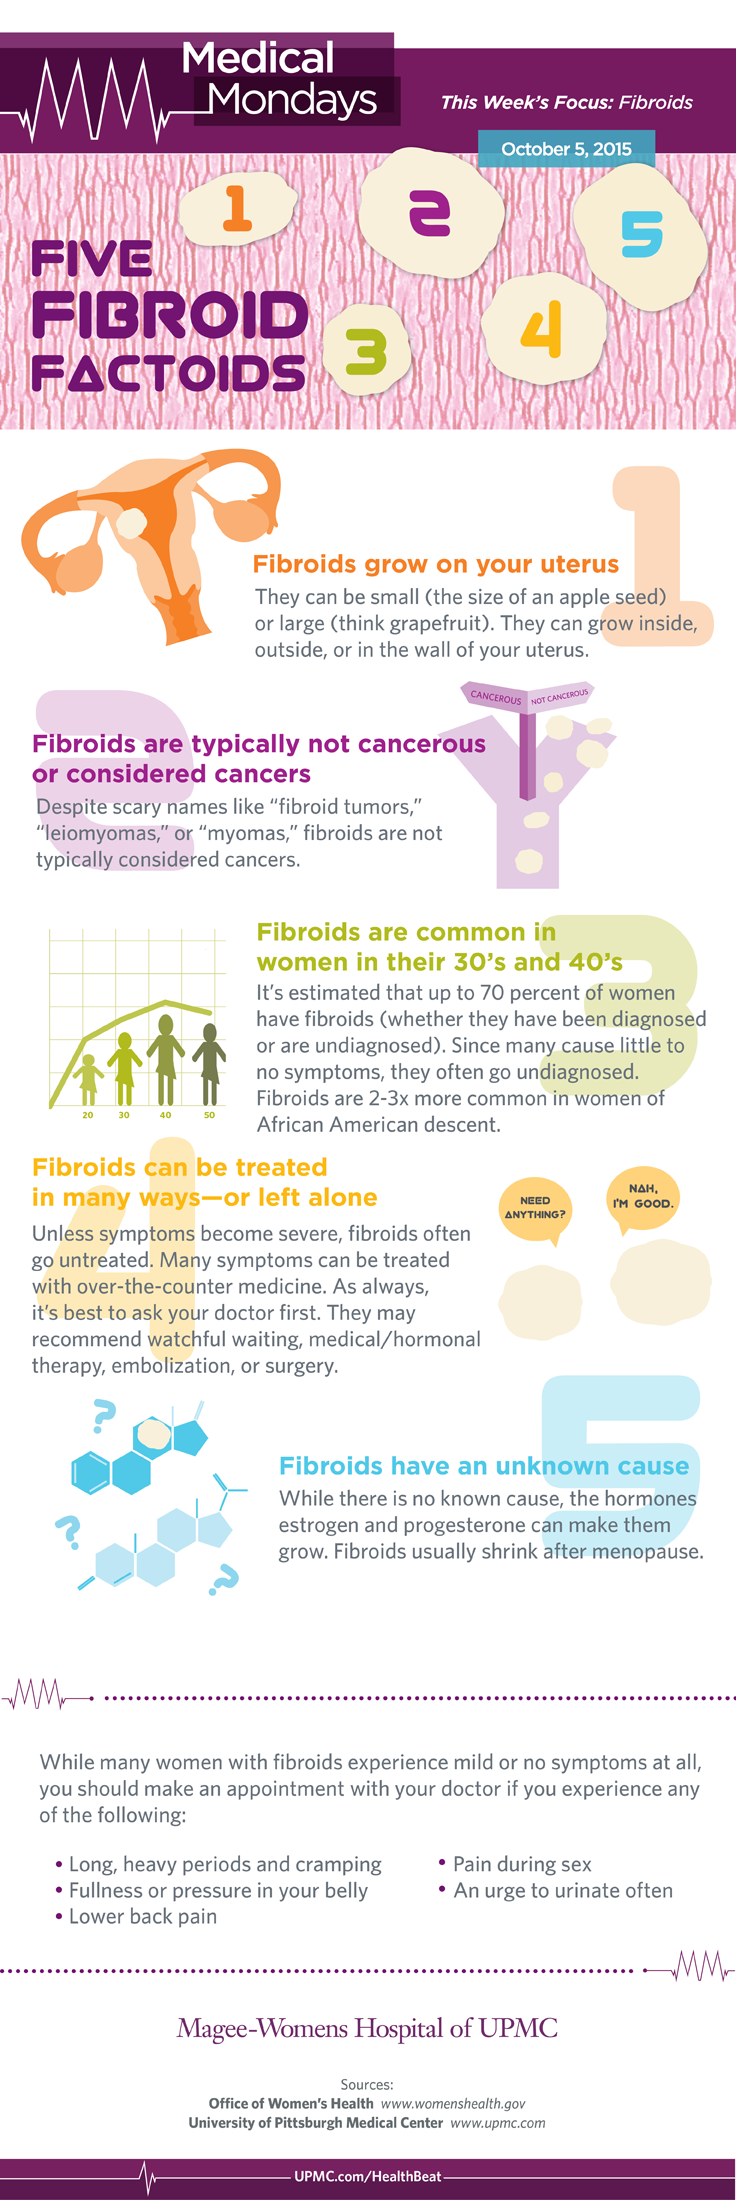 fibroids infographic